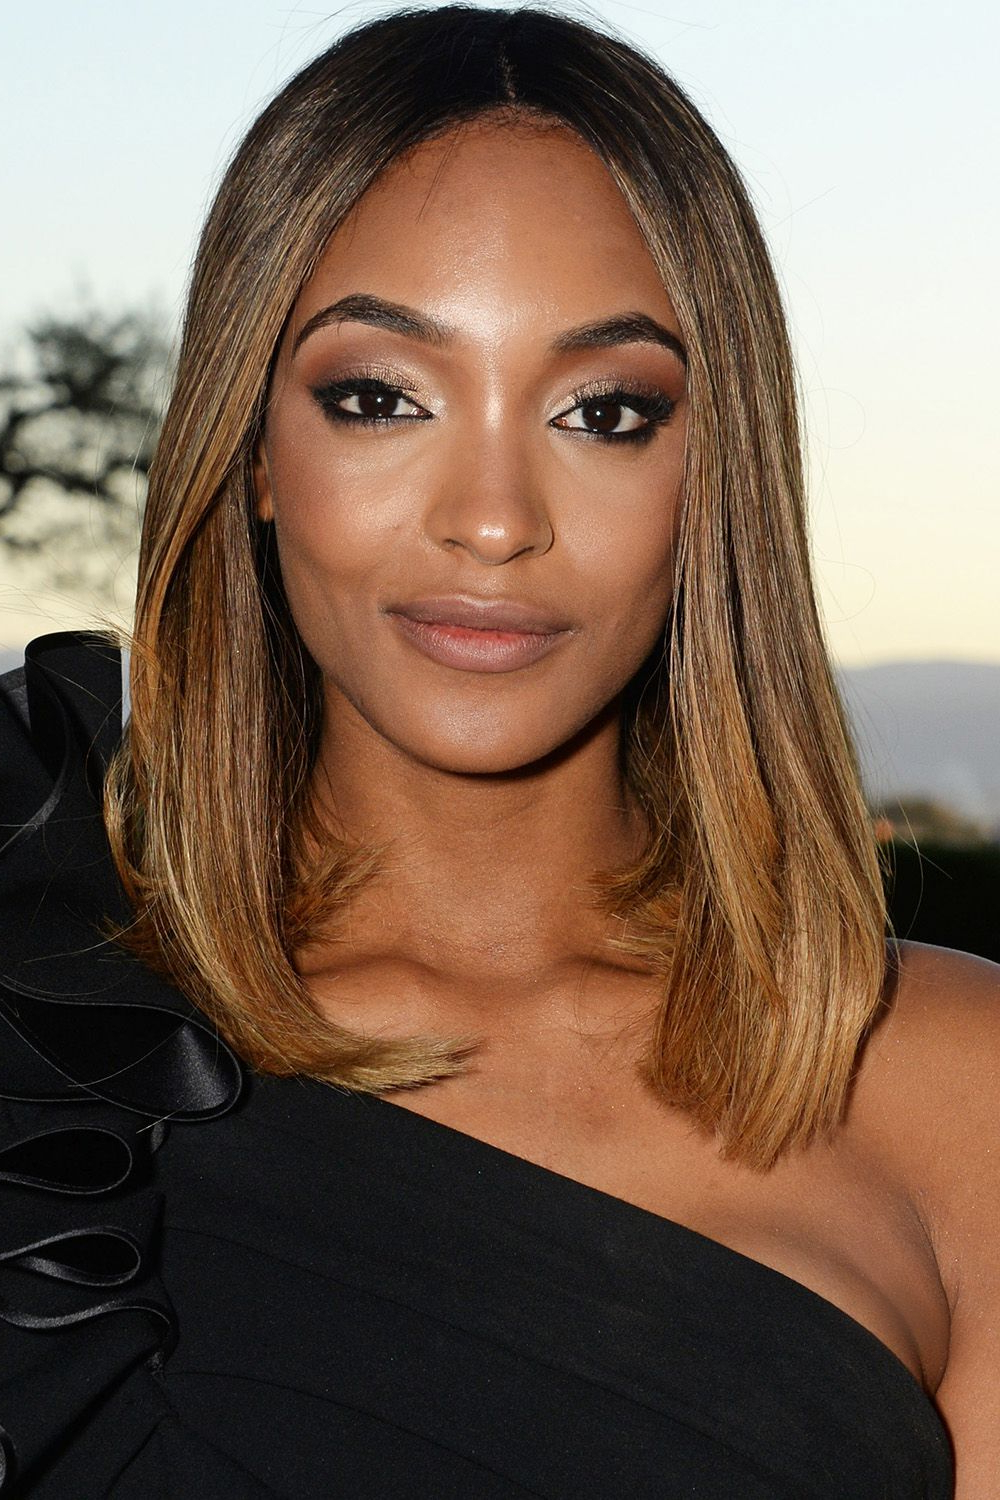 20 Photo of Swoopy Layers Hairstyles For Mid-Length Hair